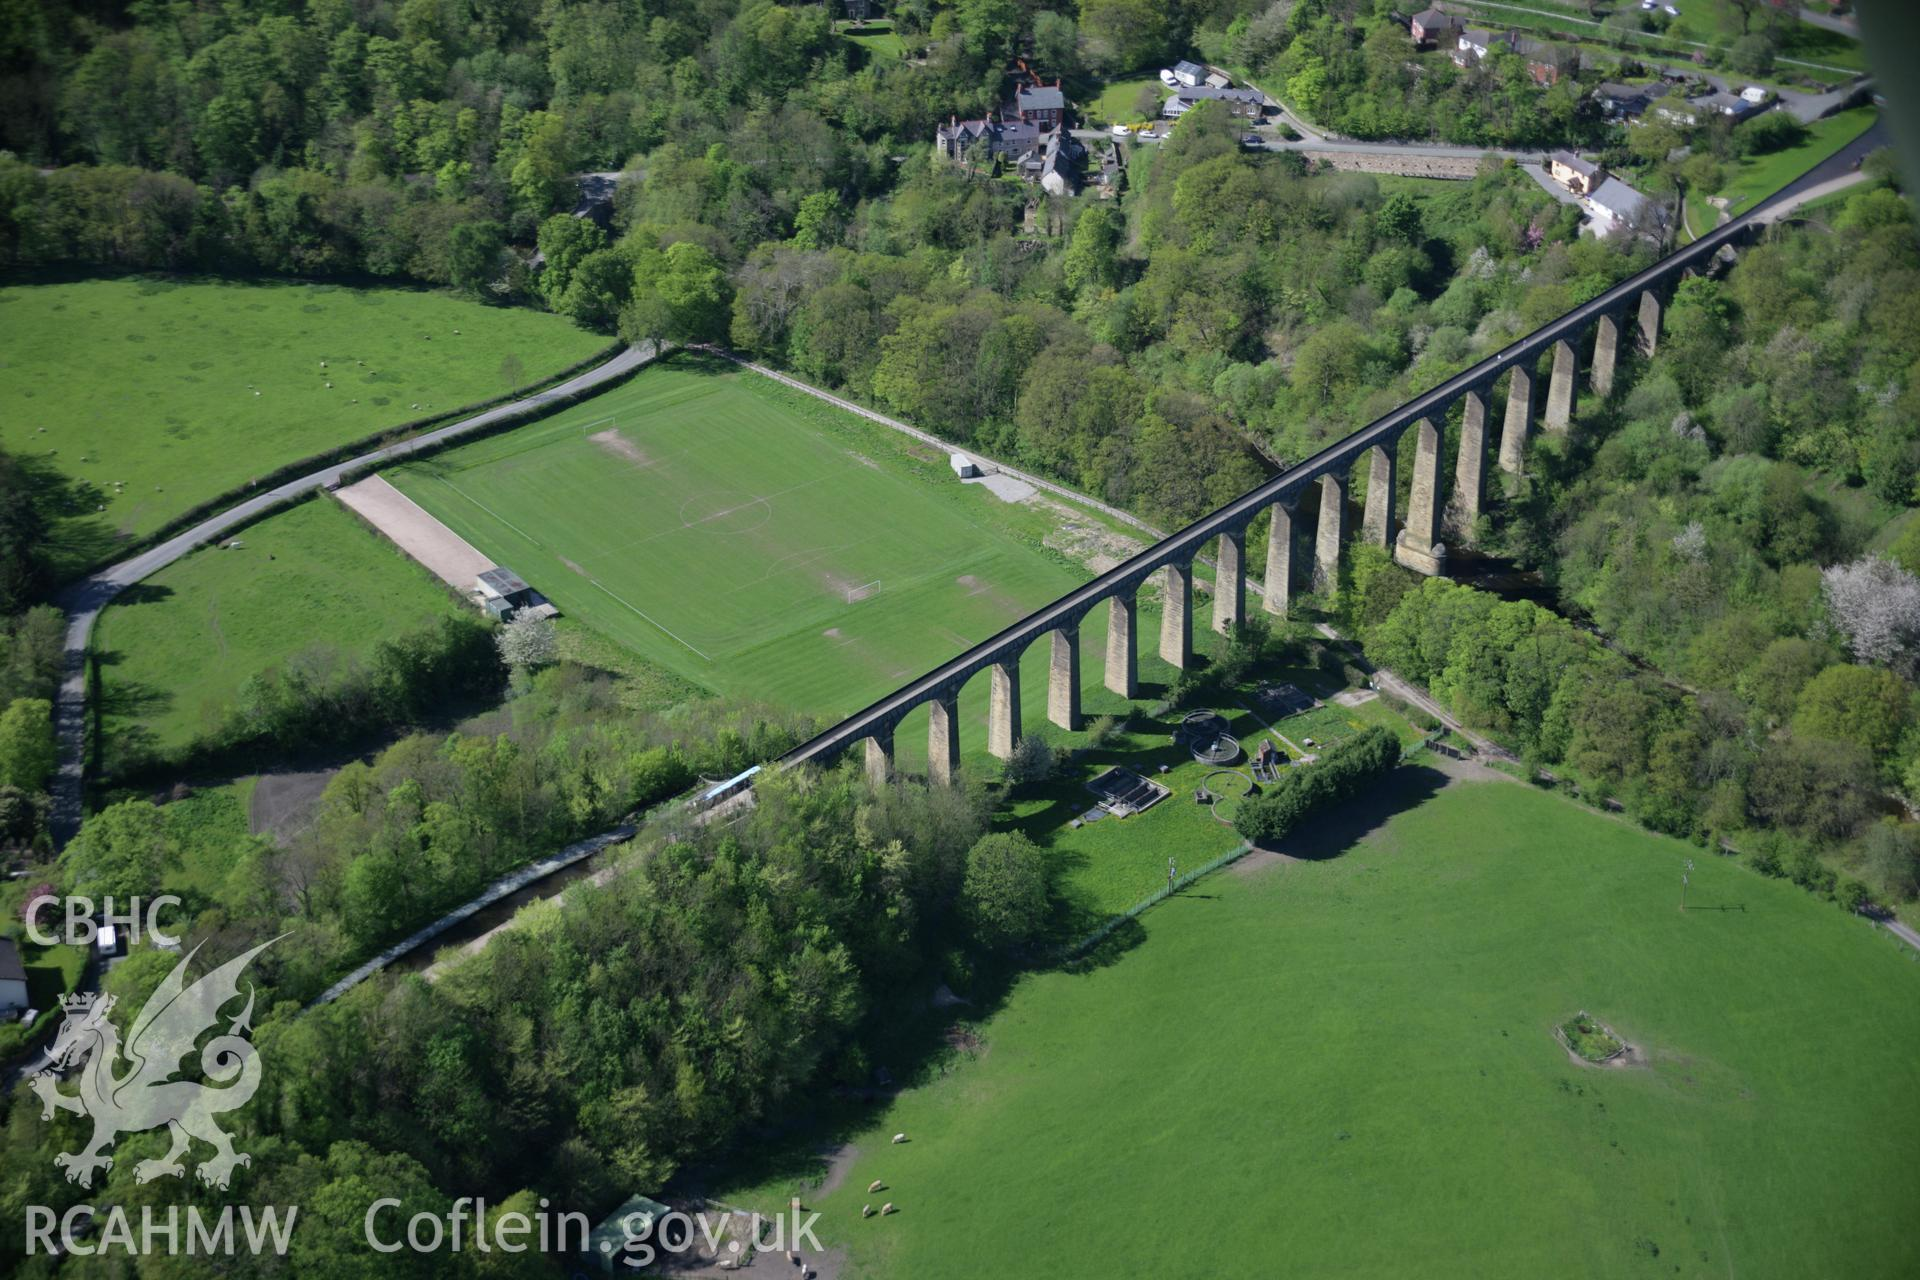 RCAHMW digital colour oblique photograph of Pontcysyllte Aqueduct viewed from the south-east. Taken on 05/05/2006 by T.G. Driver.